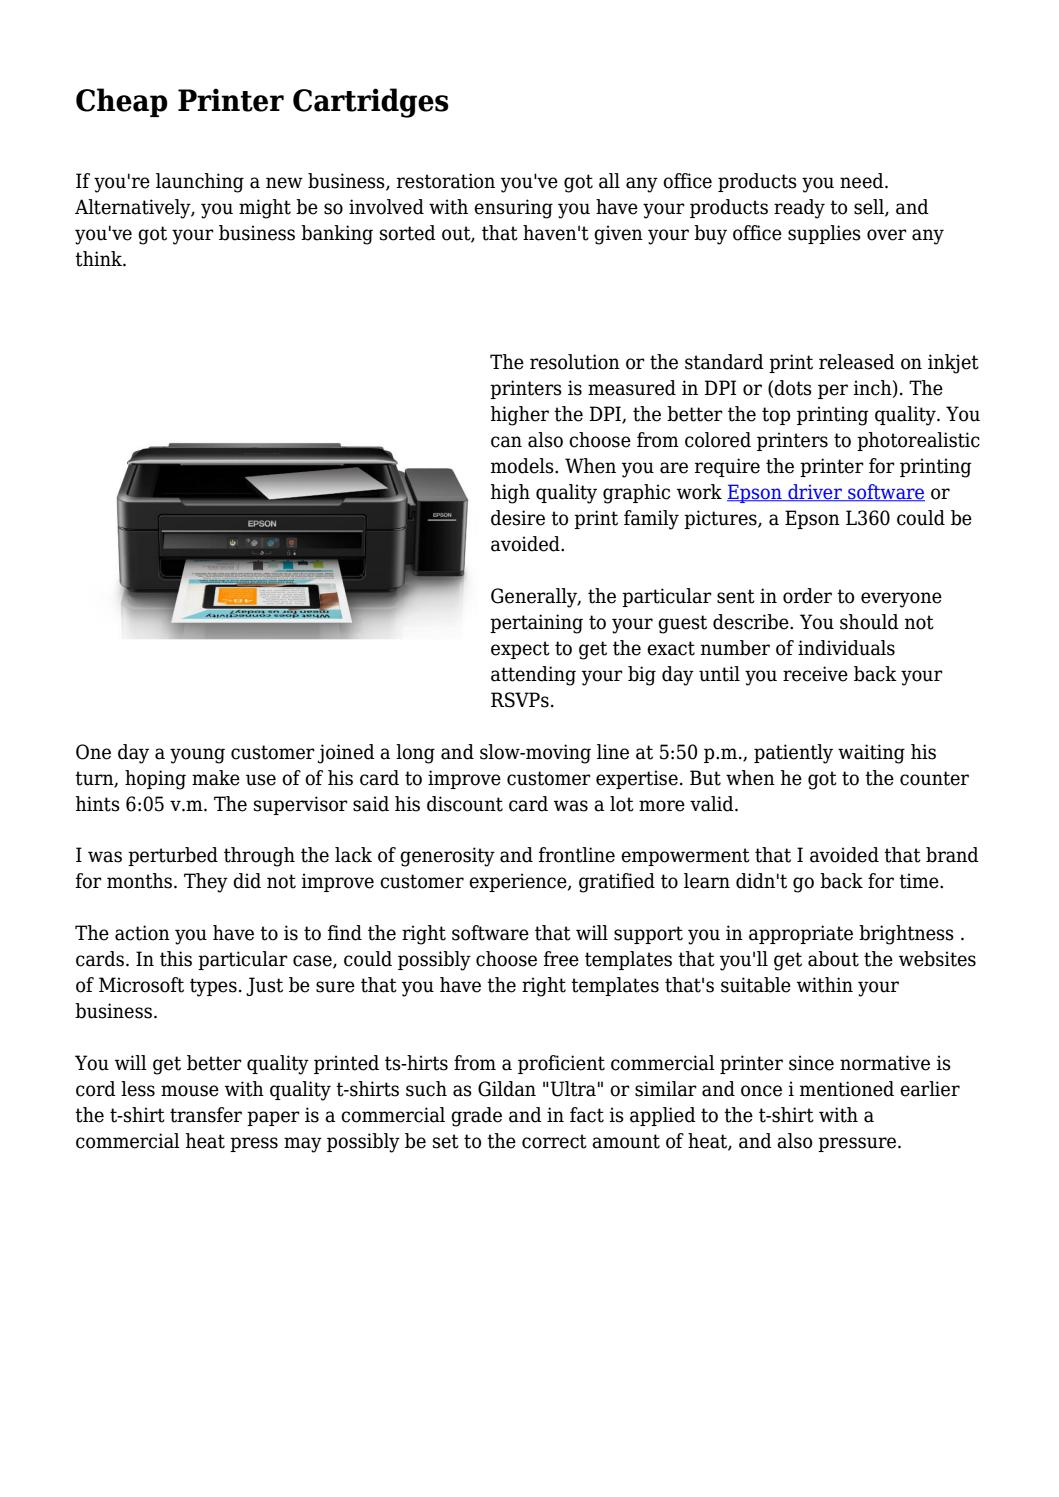 Cheap Printer Cartridges By Onegadgetgreat Issuu